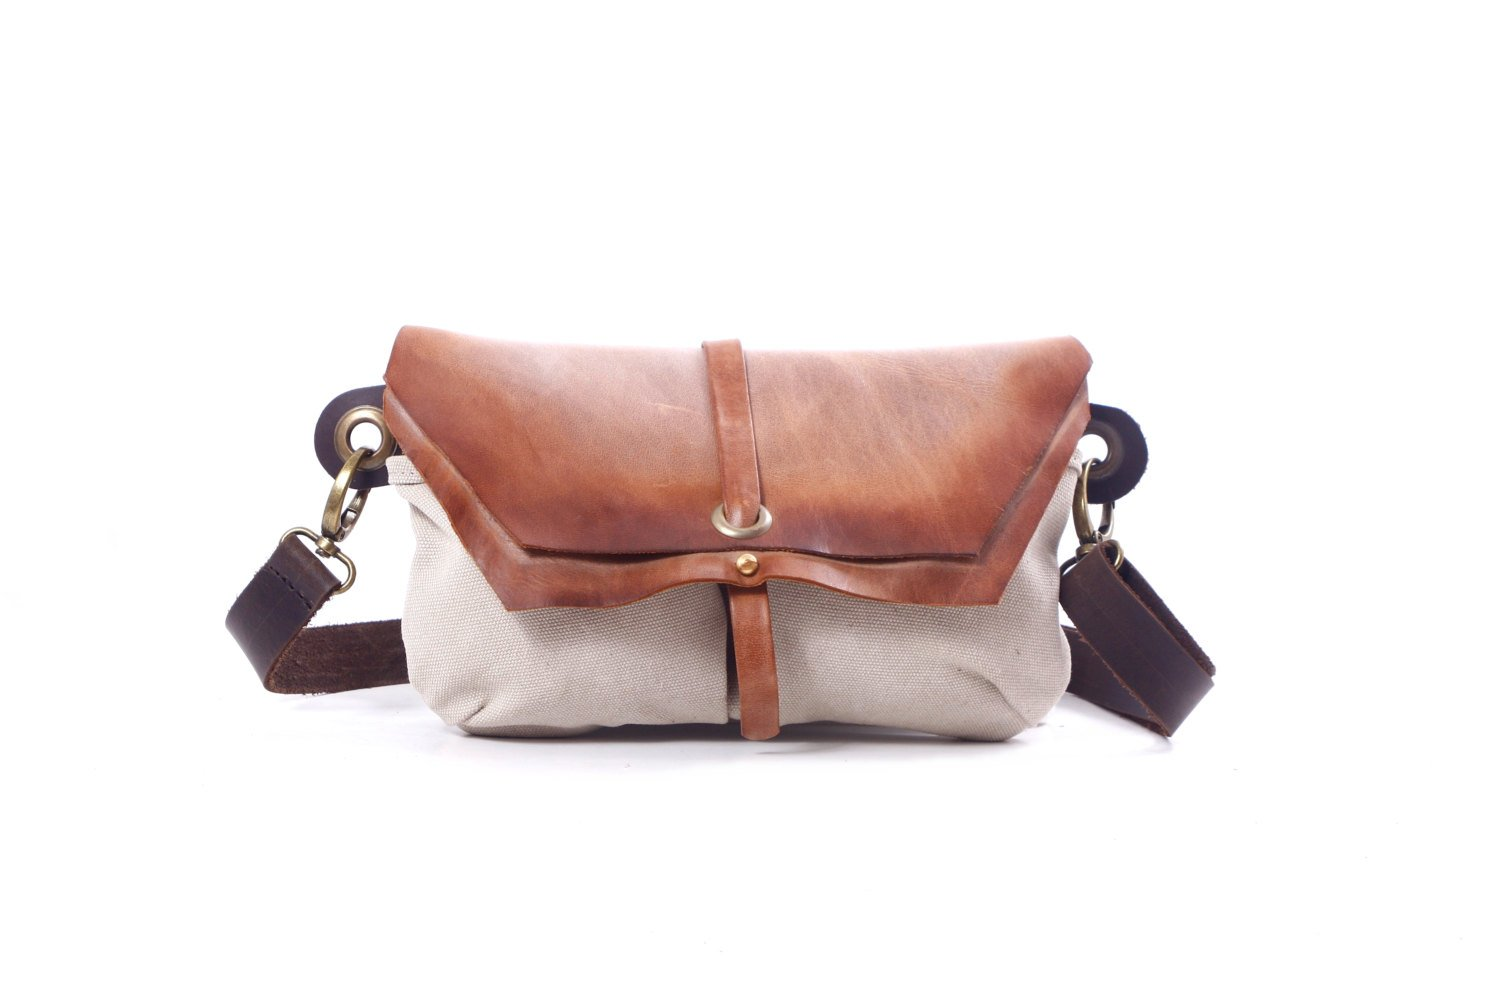 Faded Leather Hip Bag - Fanny Pack - Traveler Bag - Utility Hip Belt - Hip Pouch-Hadmade distress Leather Bag